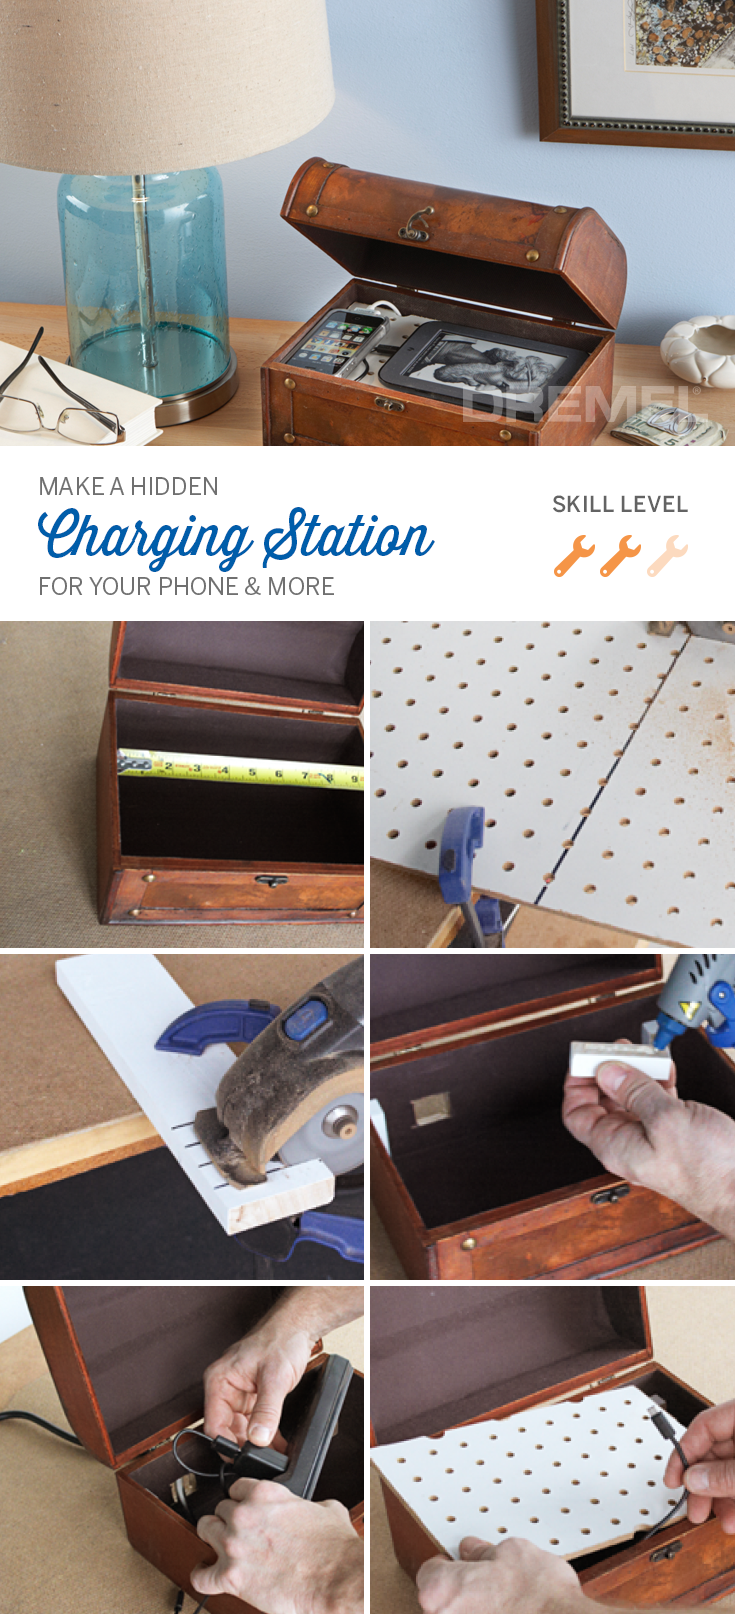 Stylish Charging Station Hiding Cords Helps Get Rid Of Clutter Plus This Diy Charging